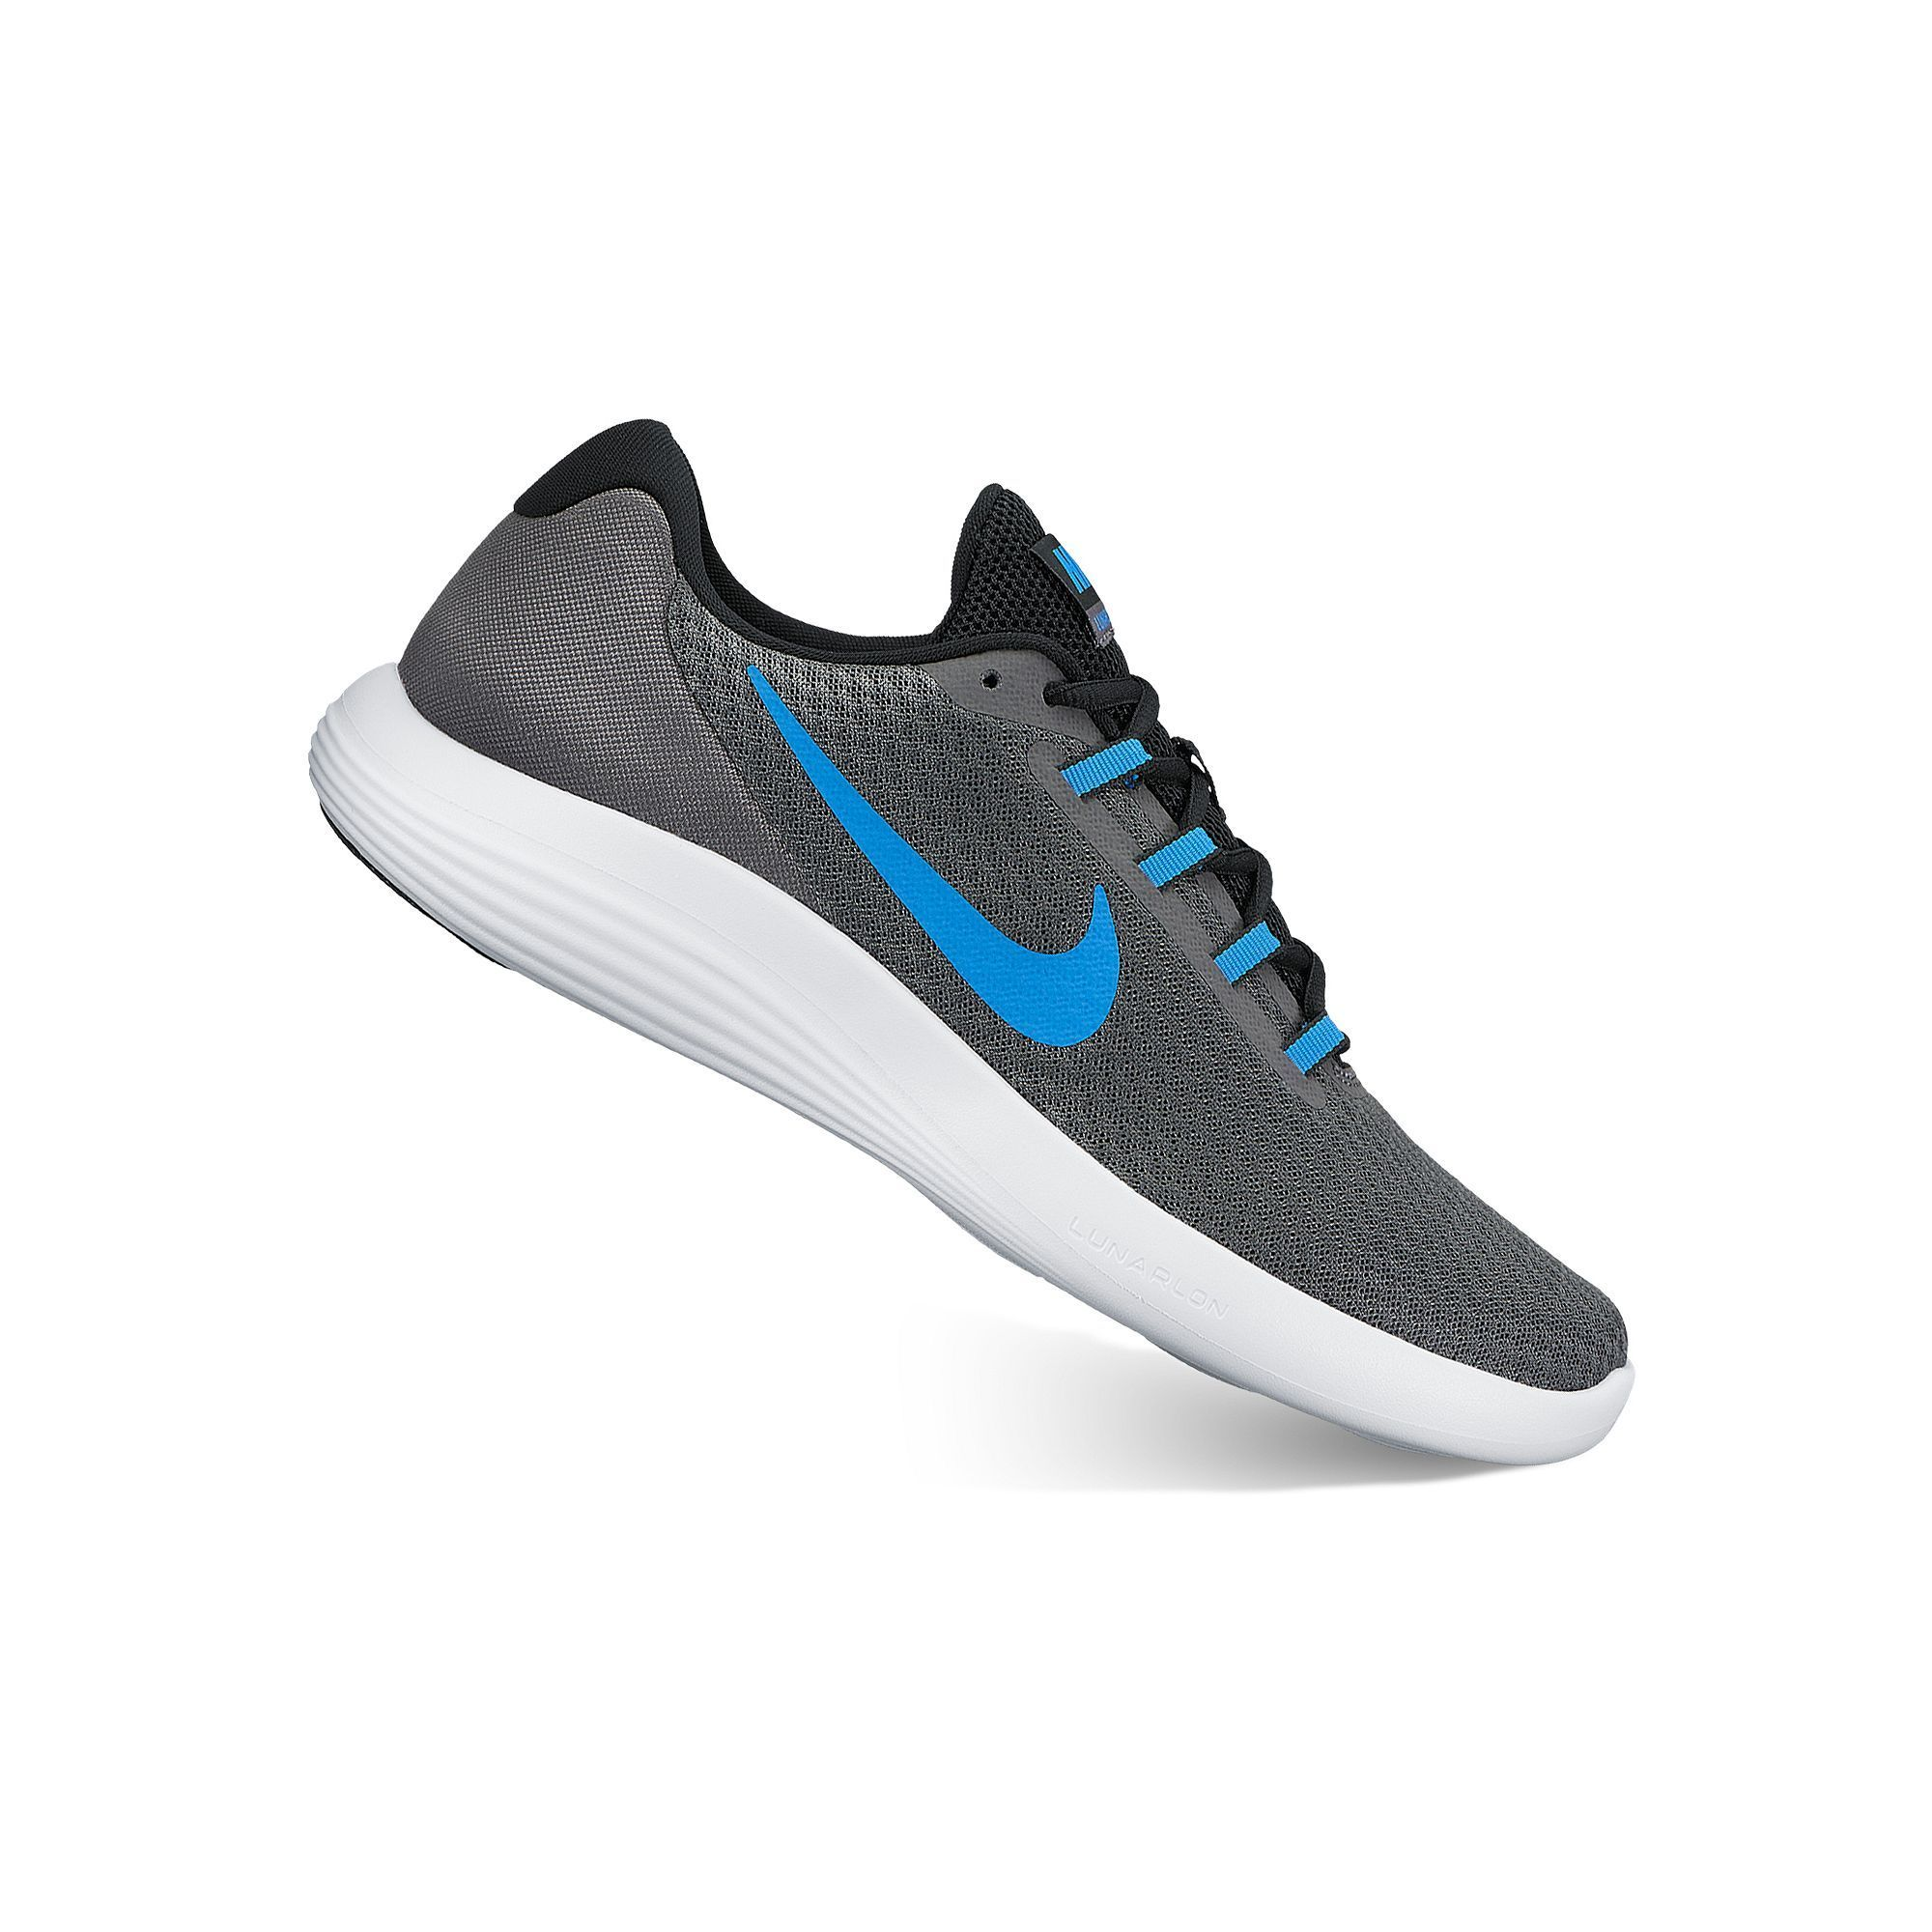 Nike LunarConverge Men's Running Shoes | Running shoes for